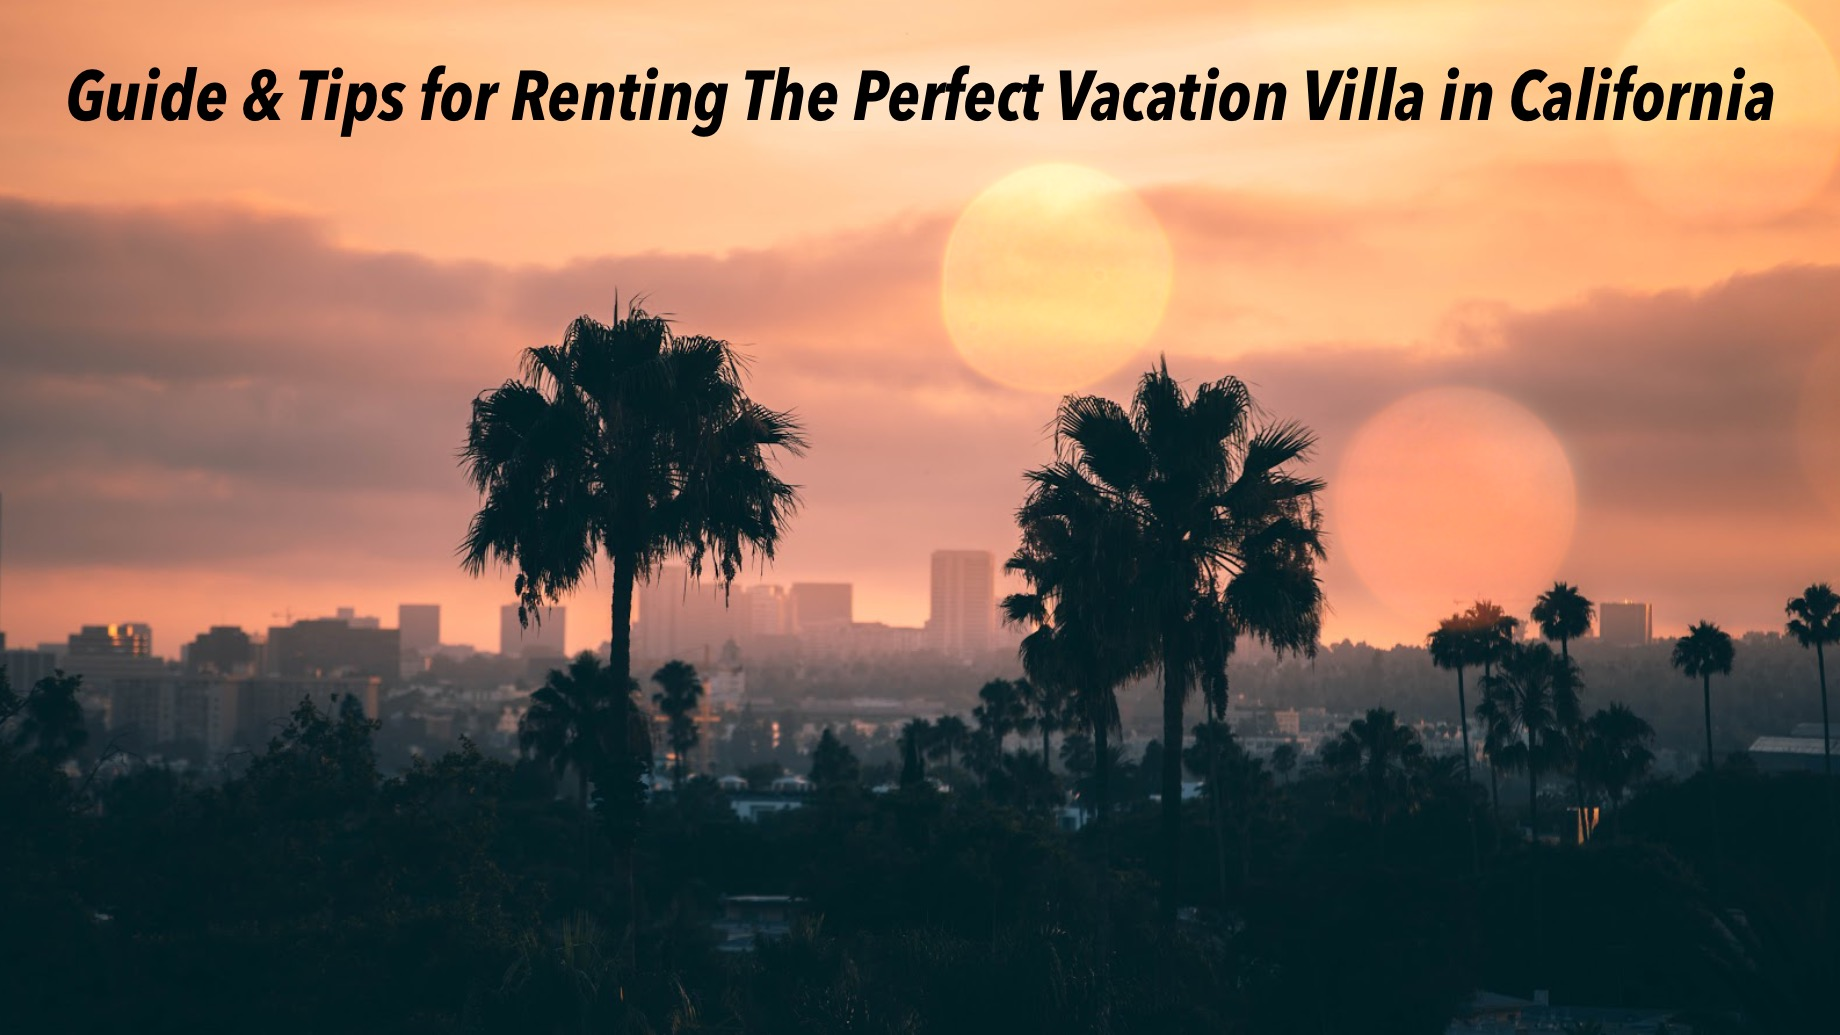 Guide & Tips for Renting The Perfect Vacation Villa in California